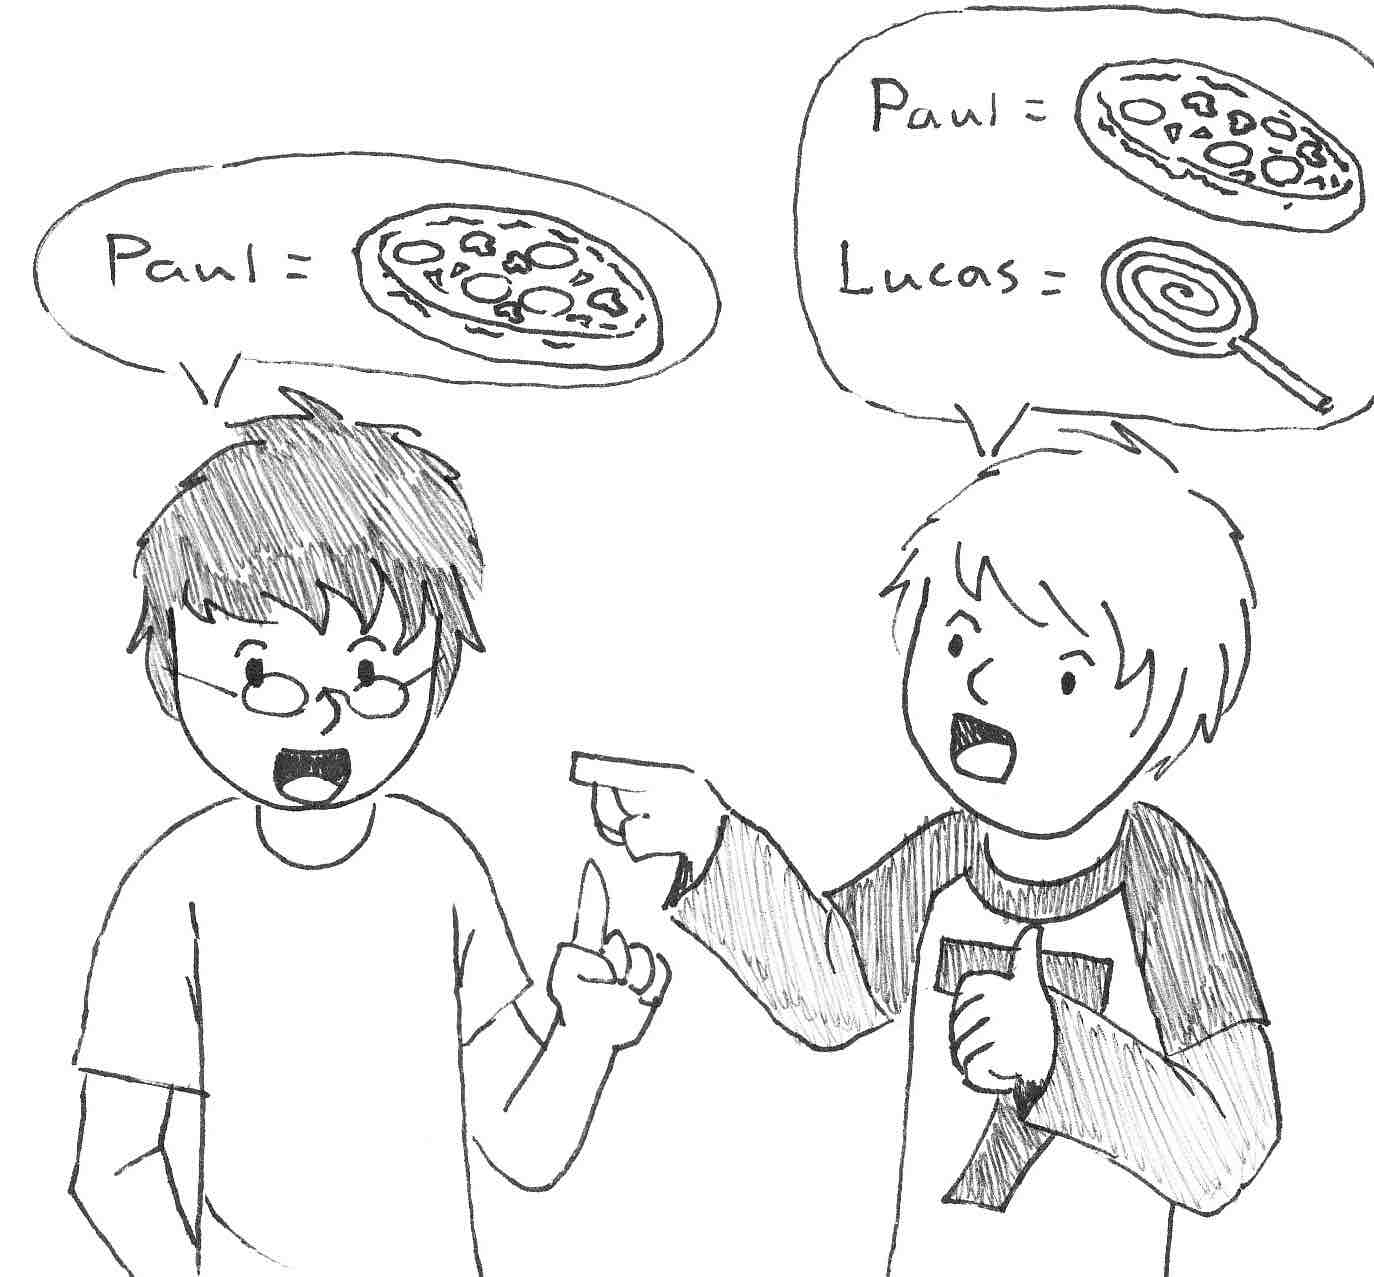 Paul, the author on the left, with his son Lucas, the illustrator, on the right